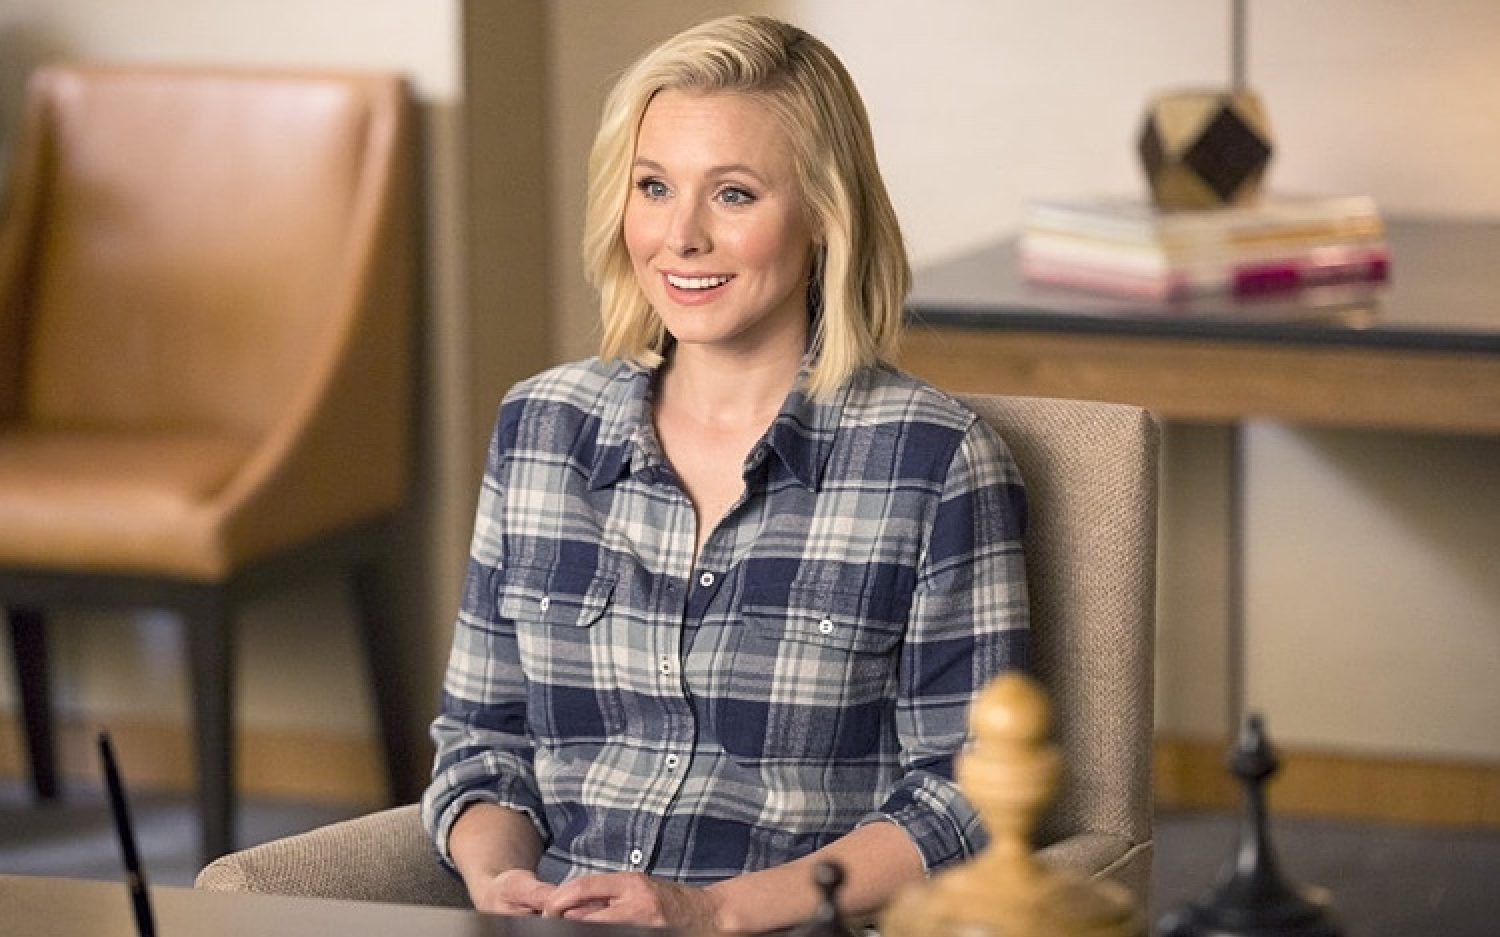 The Good Place offers food for thought despite bad theology